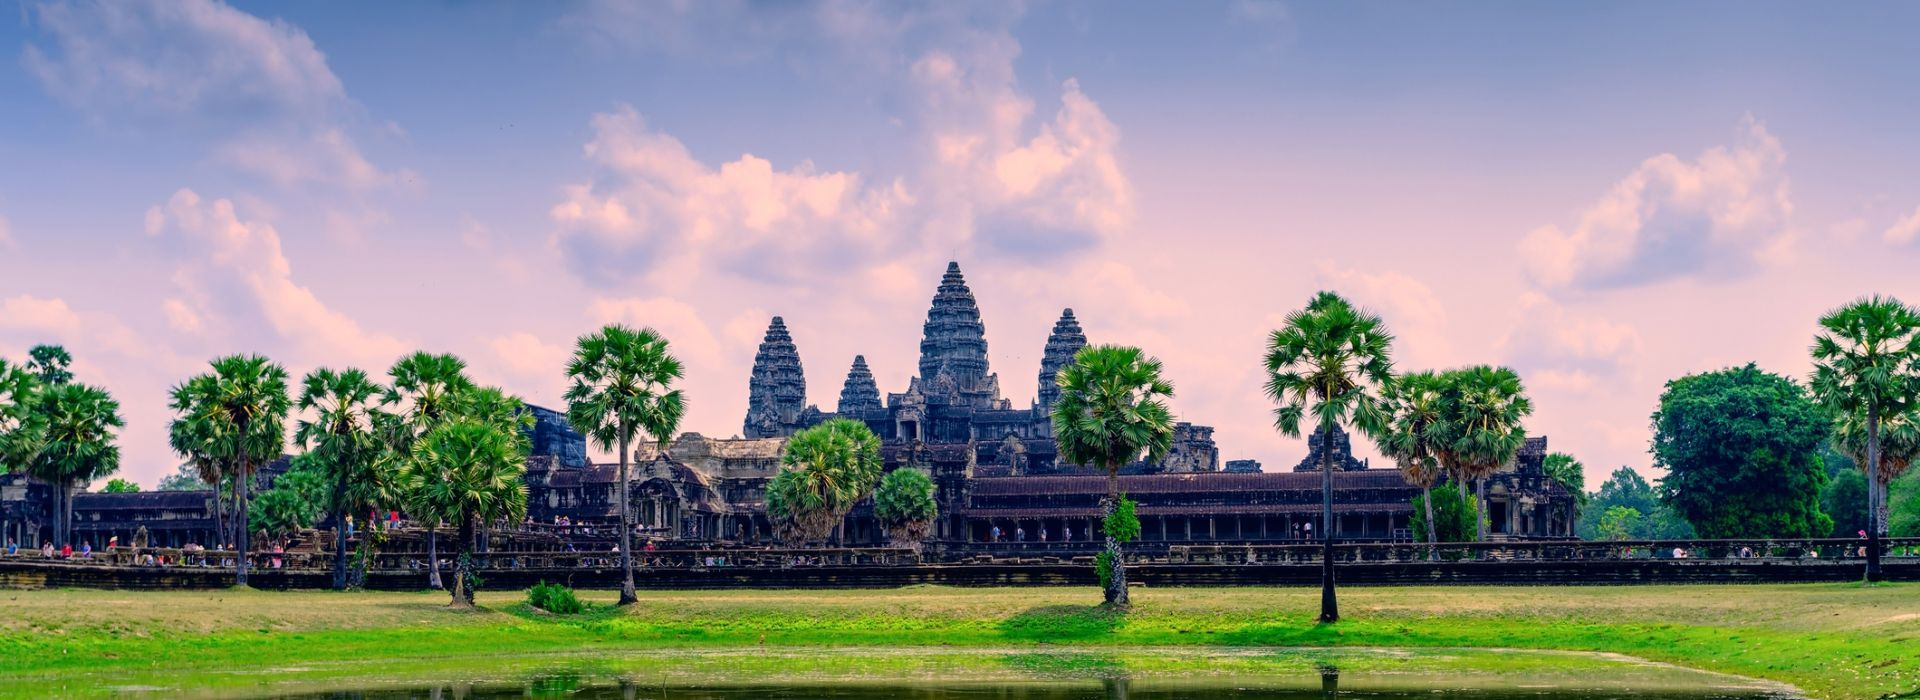 Beach, romance, getaways and relaxation Tours in Cambodia